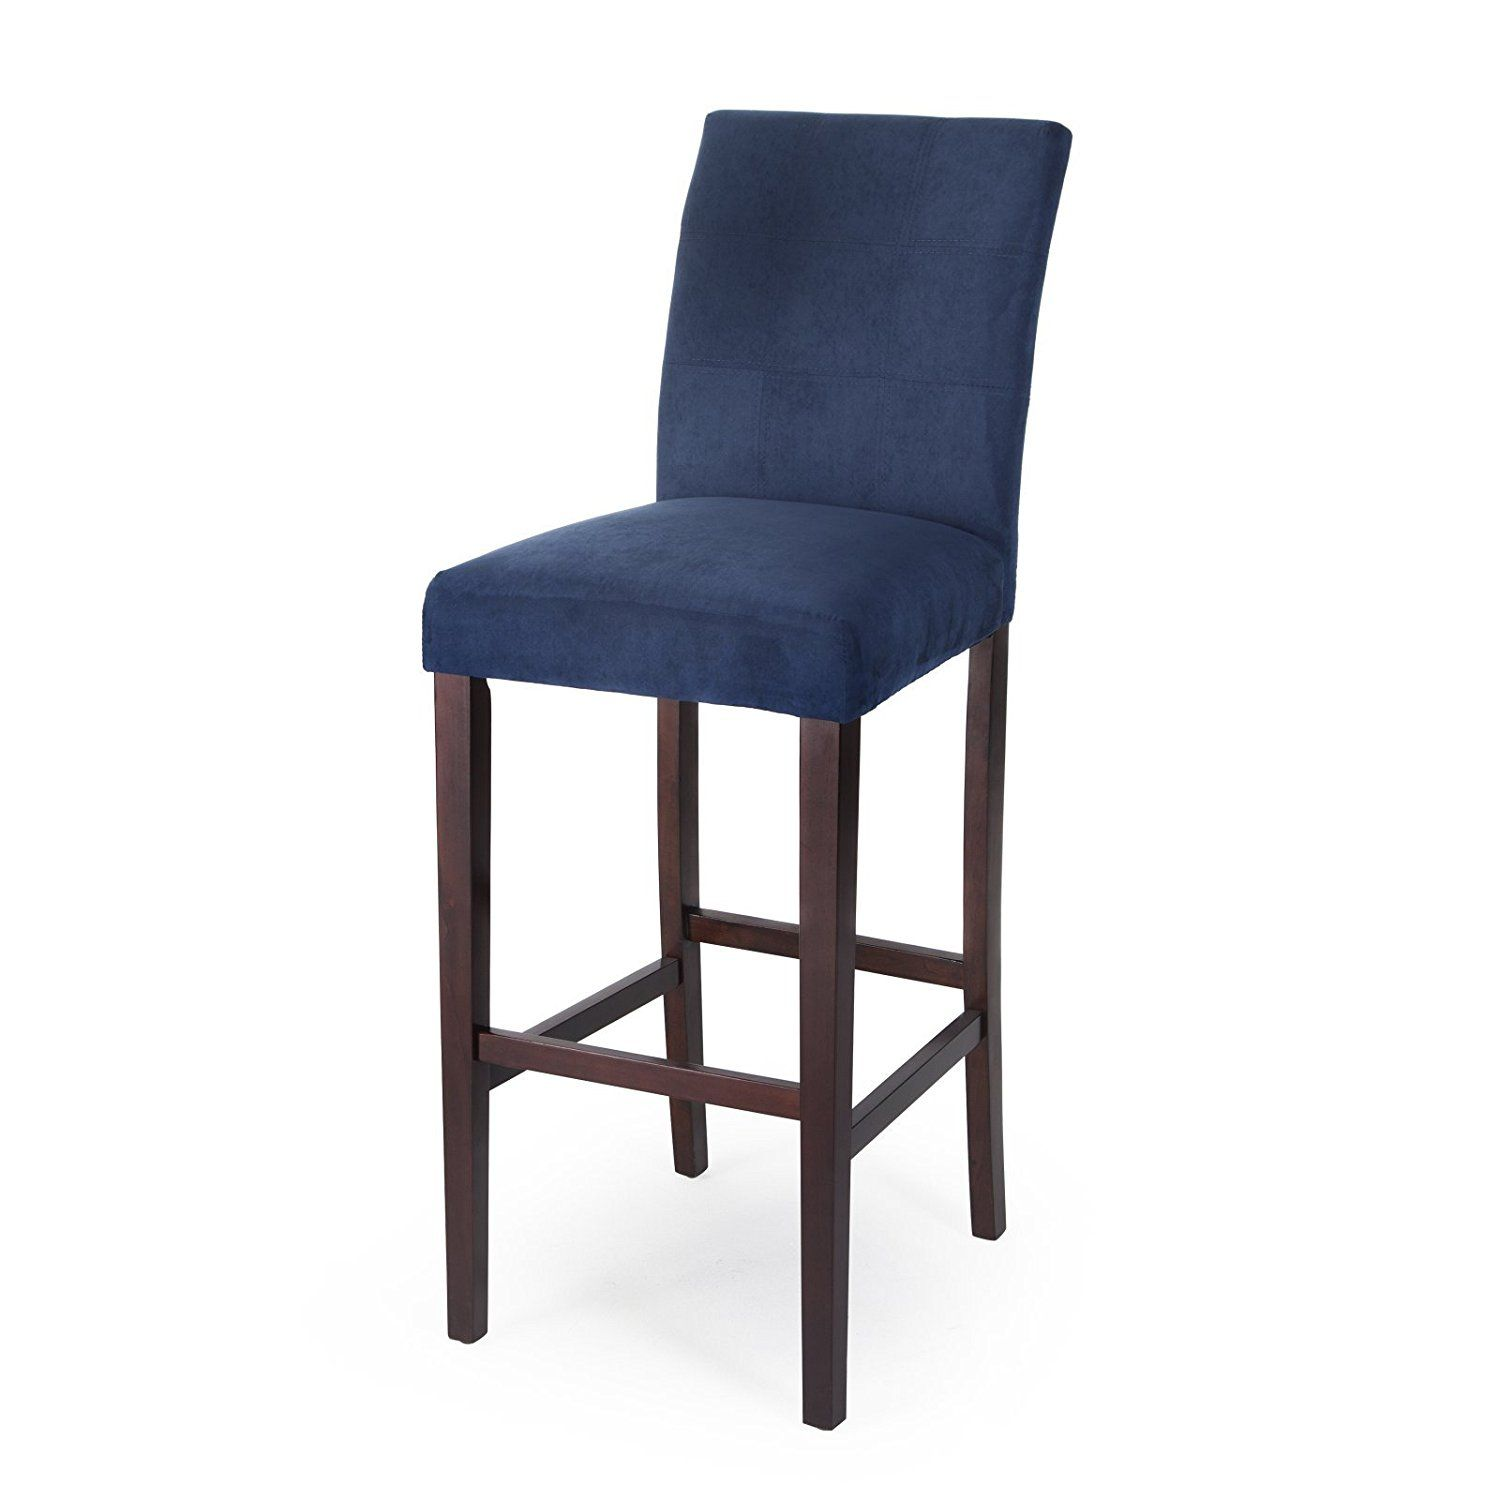 20 navy blue bar stools contemporary modern furniture check more at http